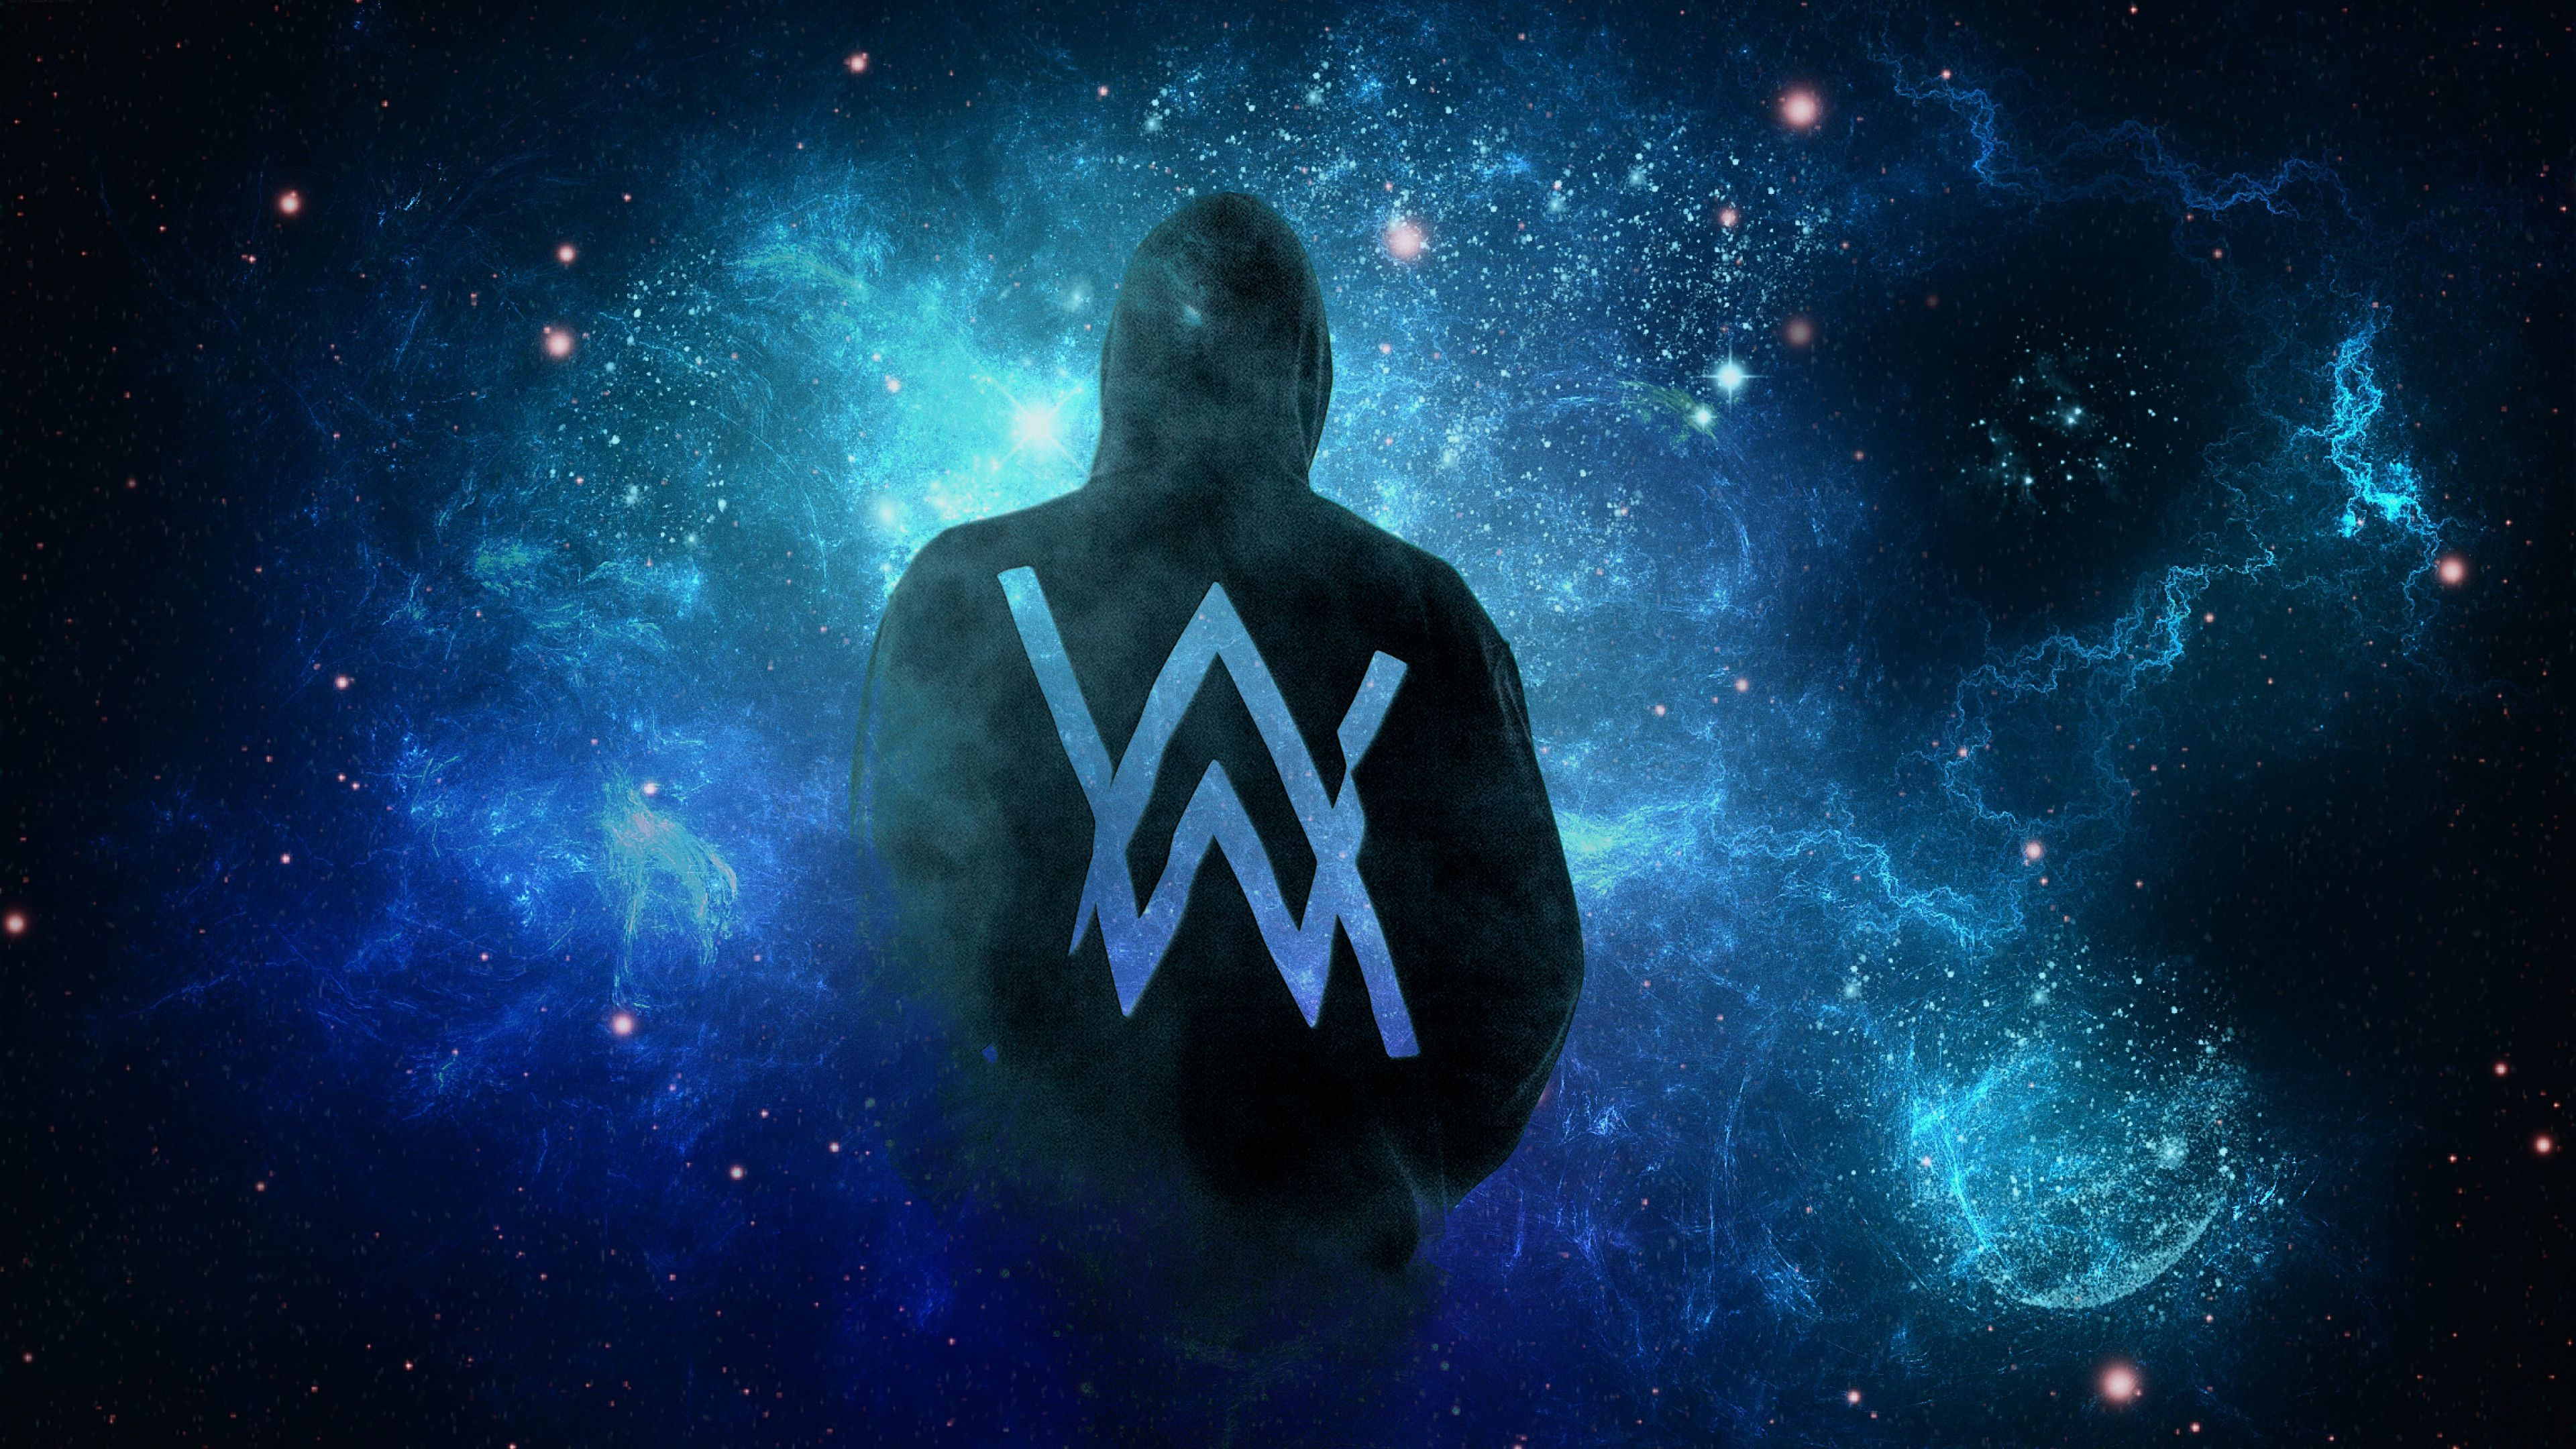 You Can Download Alan Walker Wallpapers Hd In Sizes 3840x2160 For Free In 4k 8k Hd Full Hd Qualities On Mobile Iphone Walker Wallpaper Alan Walker Walker